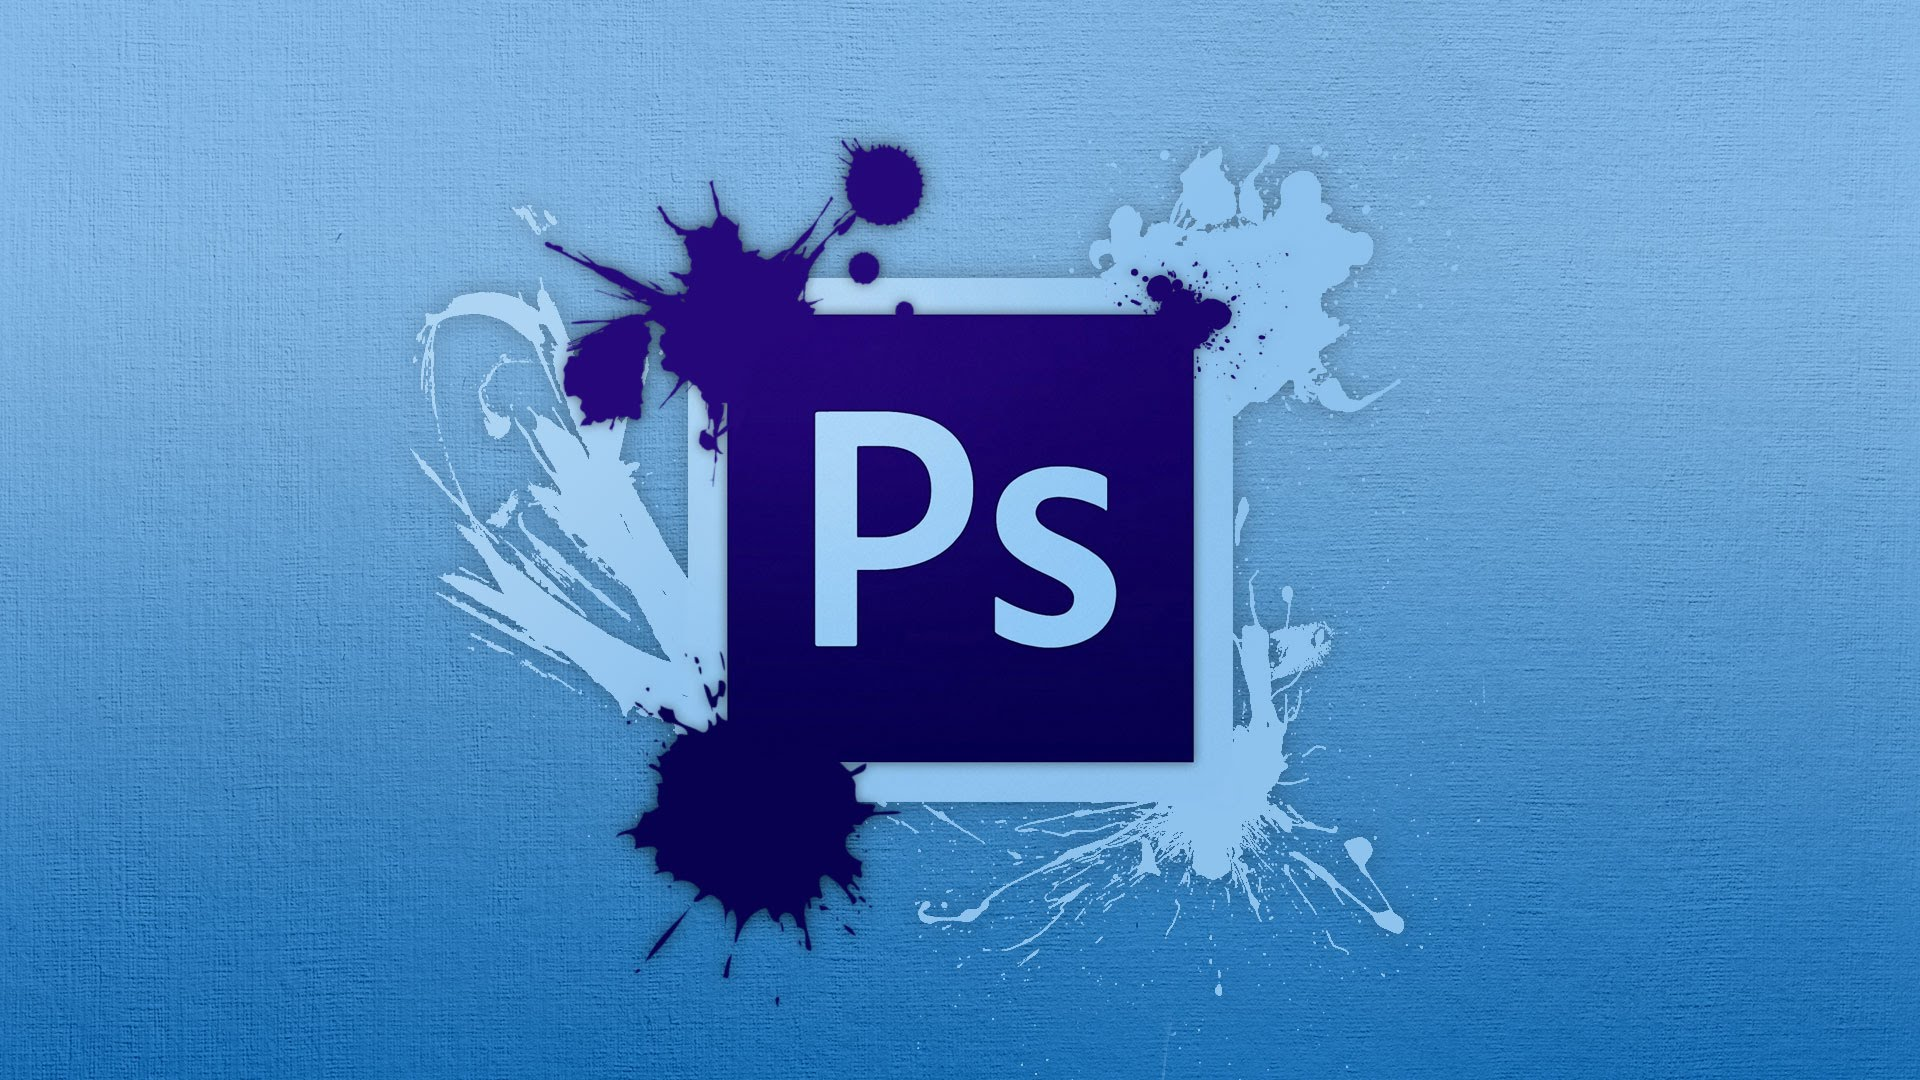 My Experience with Photoshop